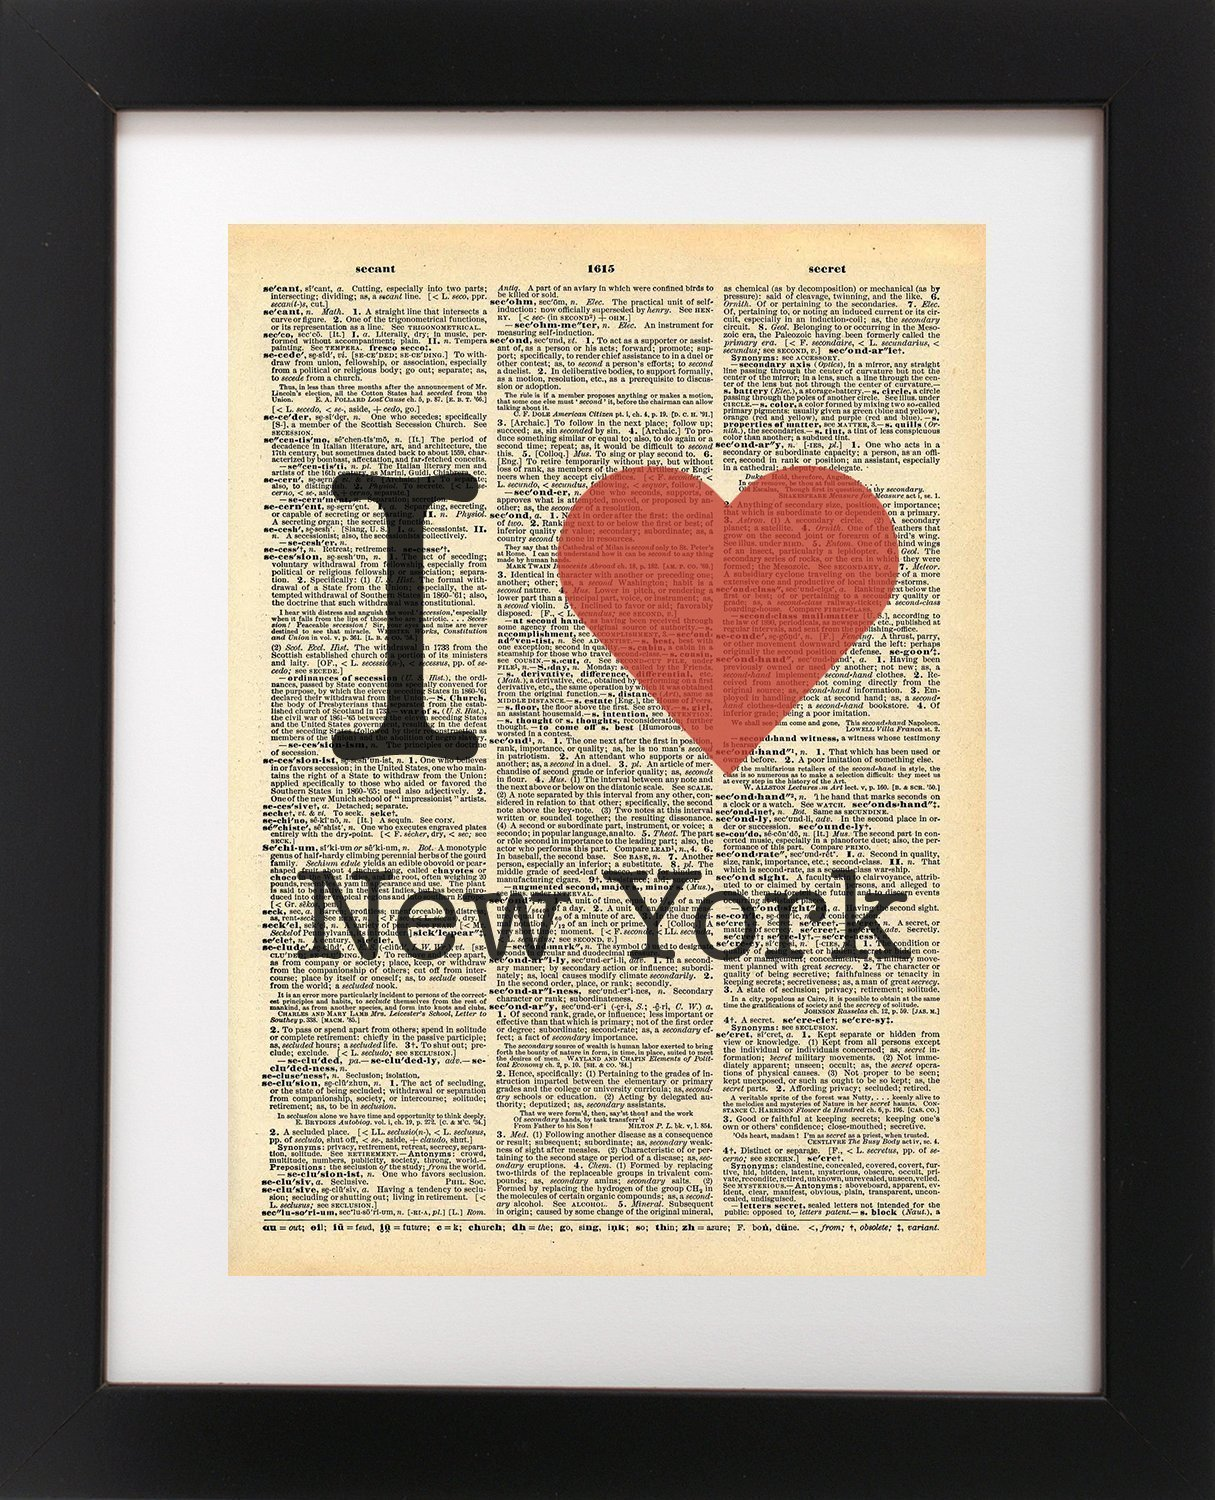 I Heart New York NYC - Vintage Dictionary Print 8x10 inch Home Vintage Art Abstract Prints Wall Art for Home Decor Wall Decorations For Living Room Bedroom Office Ready-to-Frame